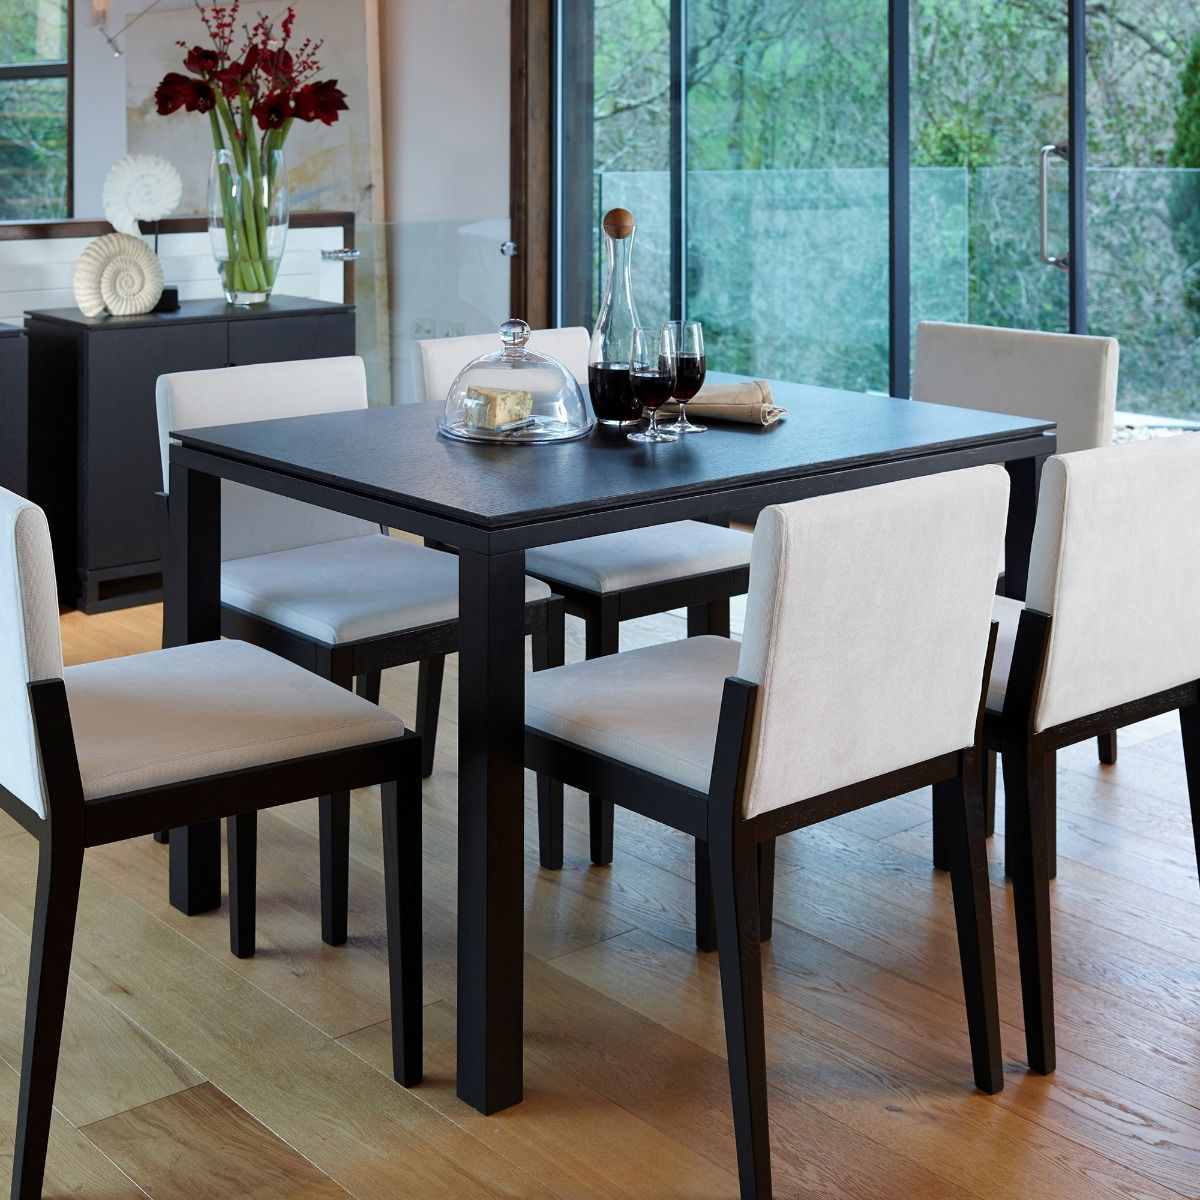 Large Rectangular Dining Table